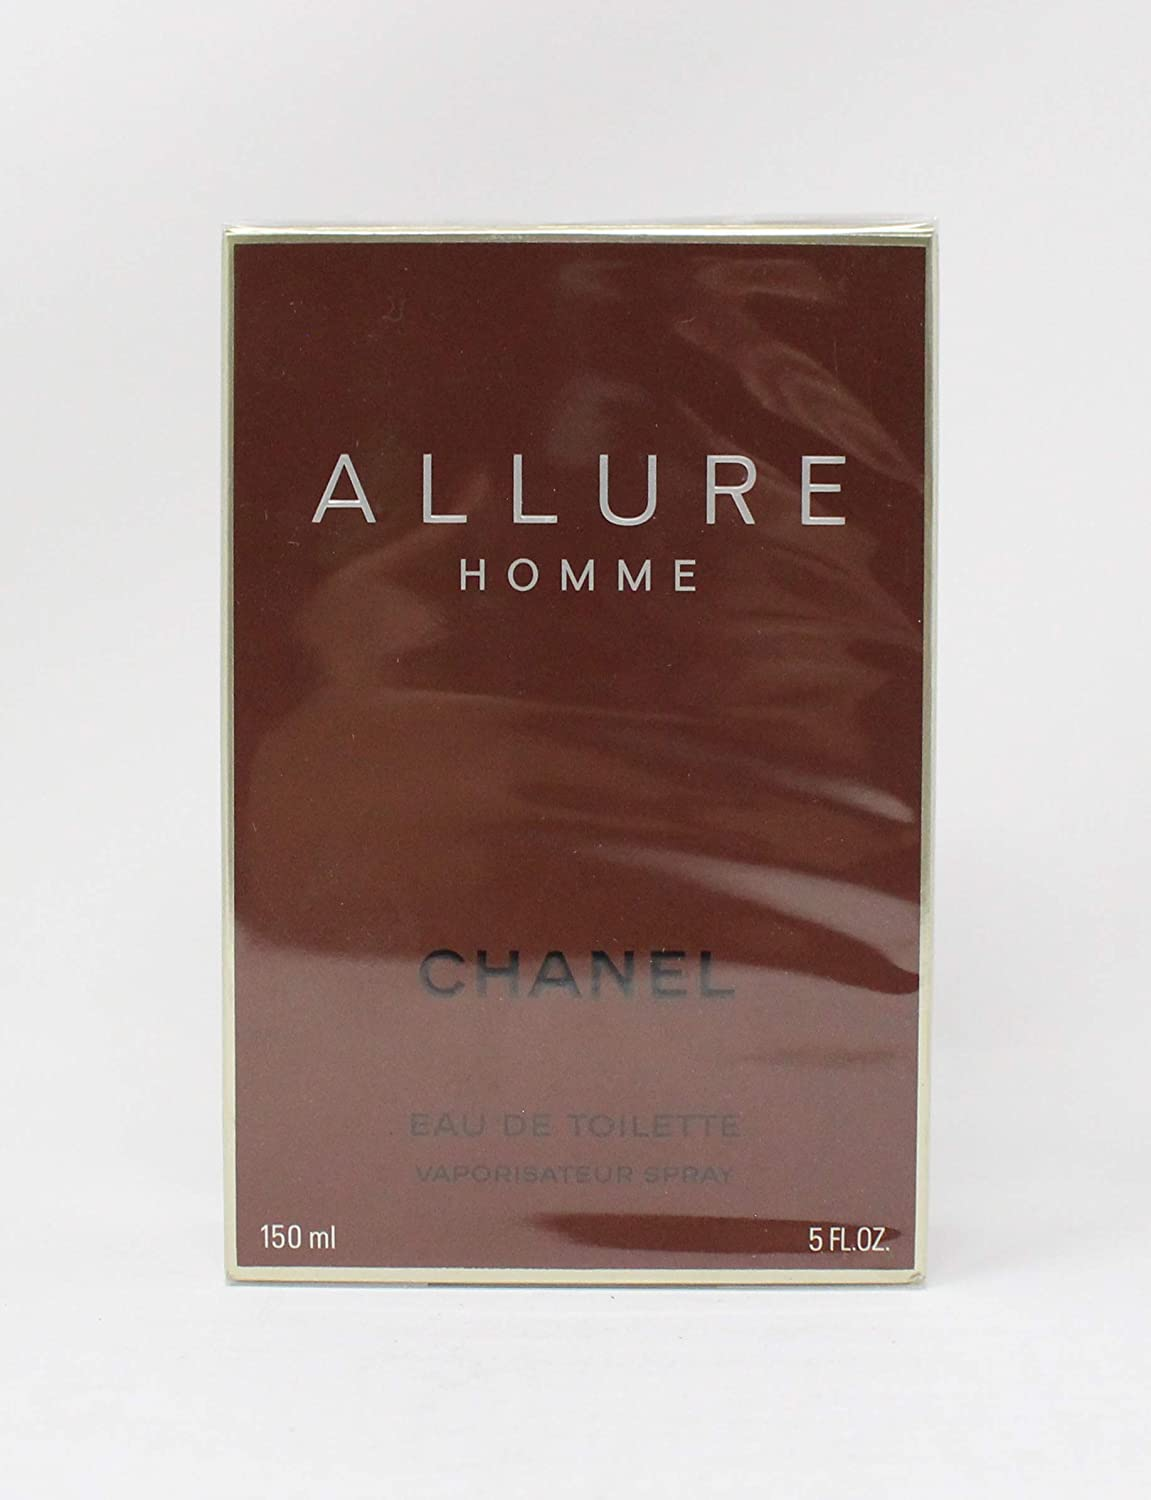 Allure Homme by Chanel EDT Spray 5.0 oz (150 ml)